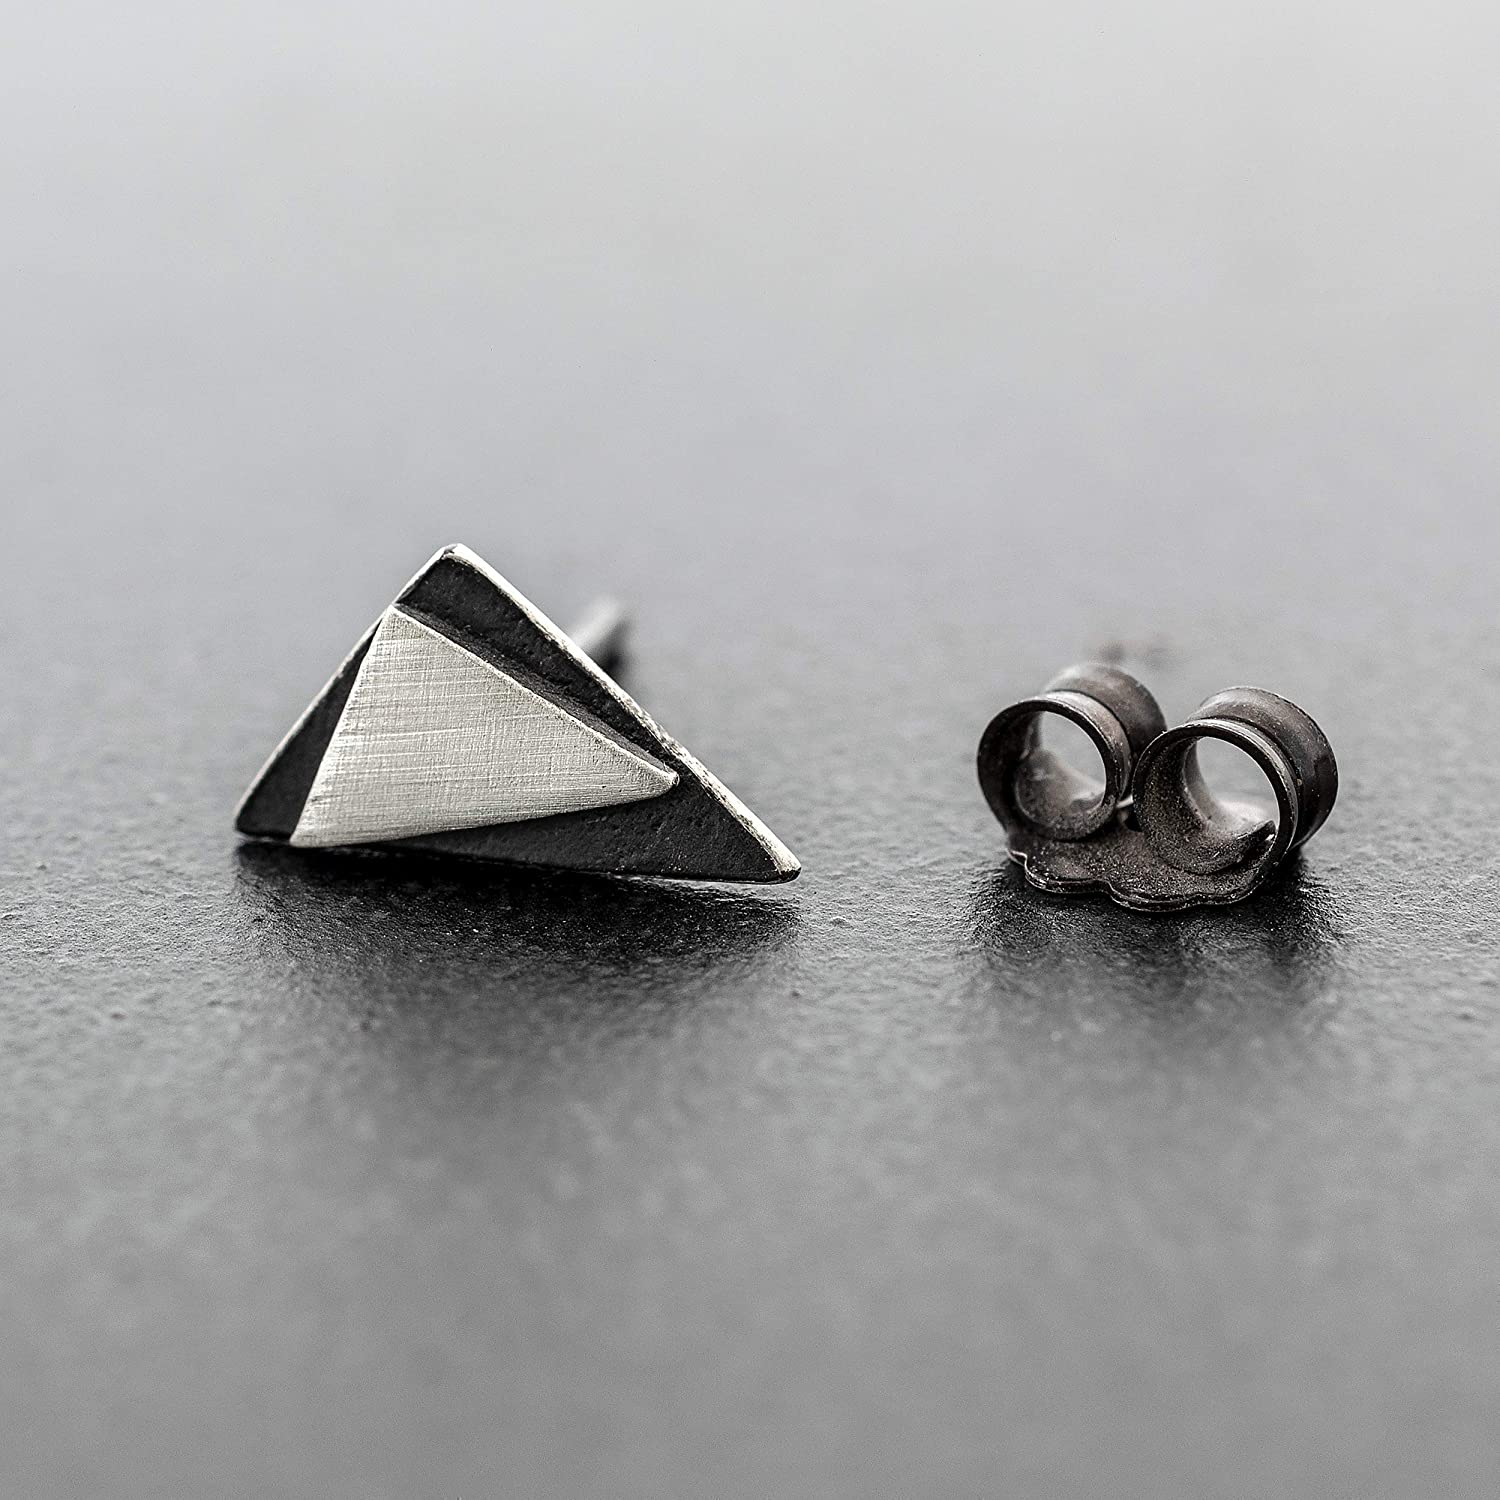 Sterling silver earring for men earring stud men stud earring triangle earring men gift for men jewelry boyfriend birthday gift men husband